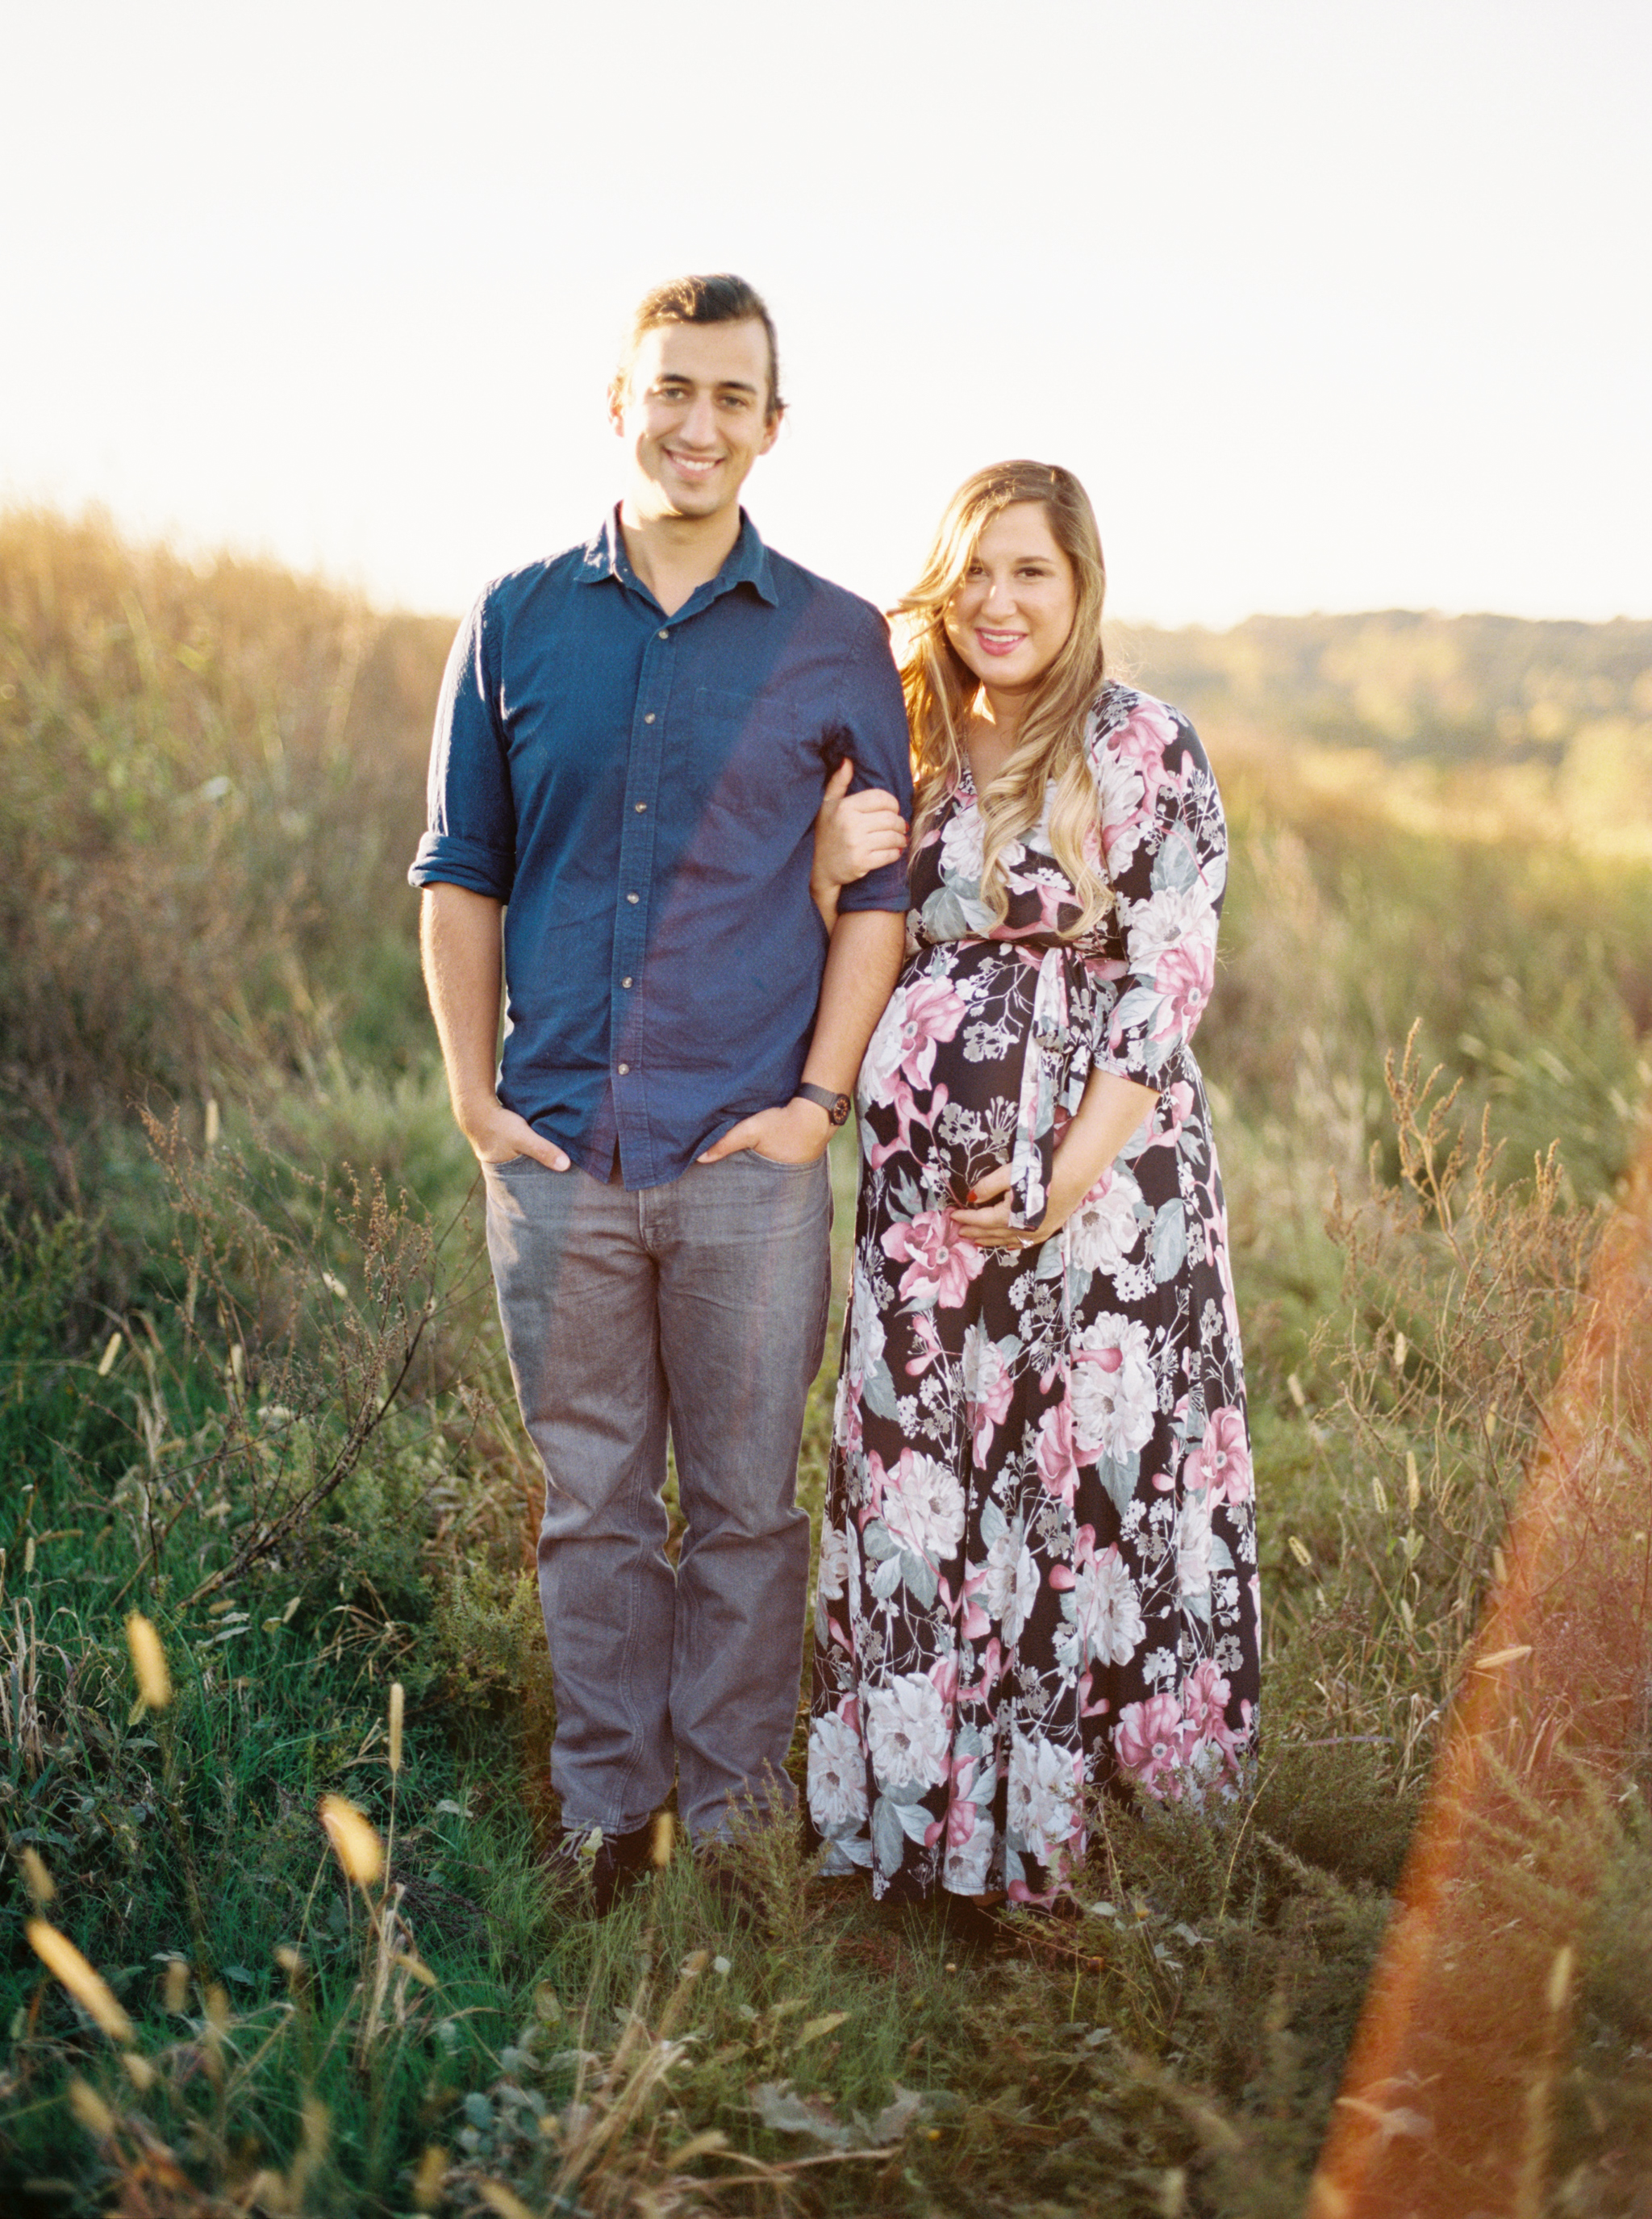 Such a special HUGE shout out to my sweet kind forever friend Rachel Linder of  Blue Barn Photography  for taking these magical photos and helping us document such a special part of our life!